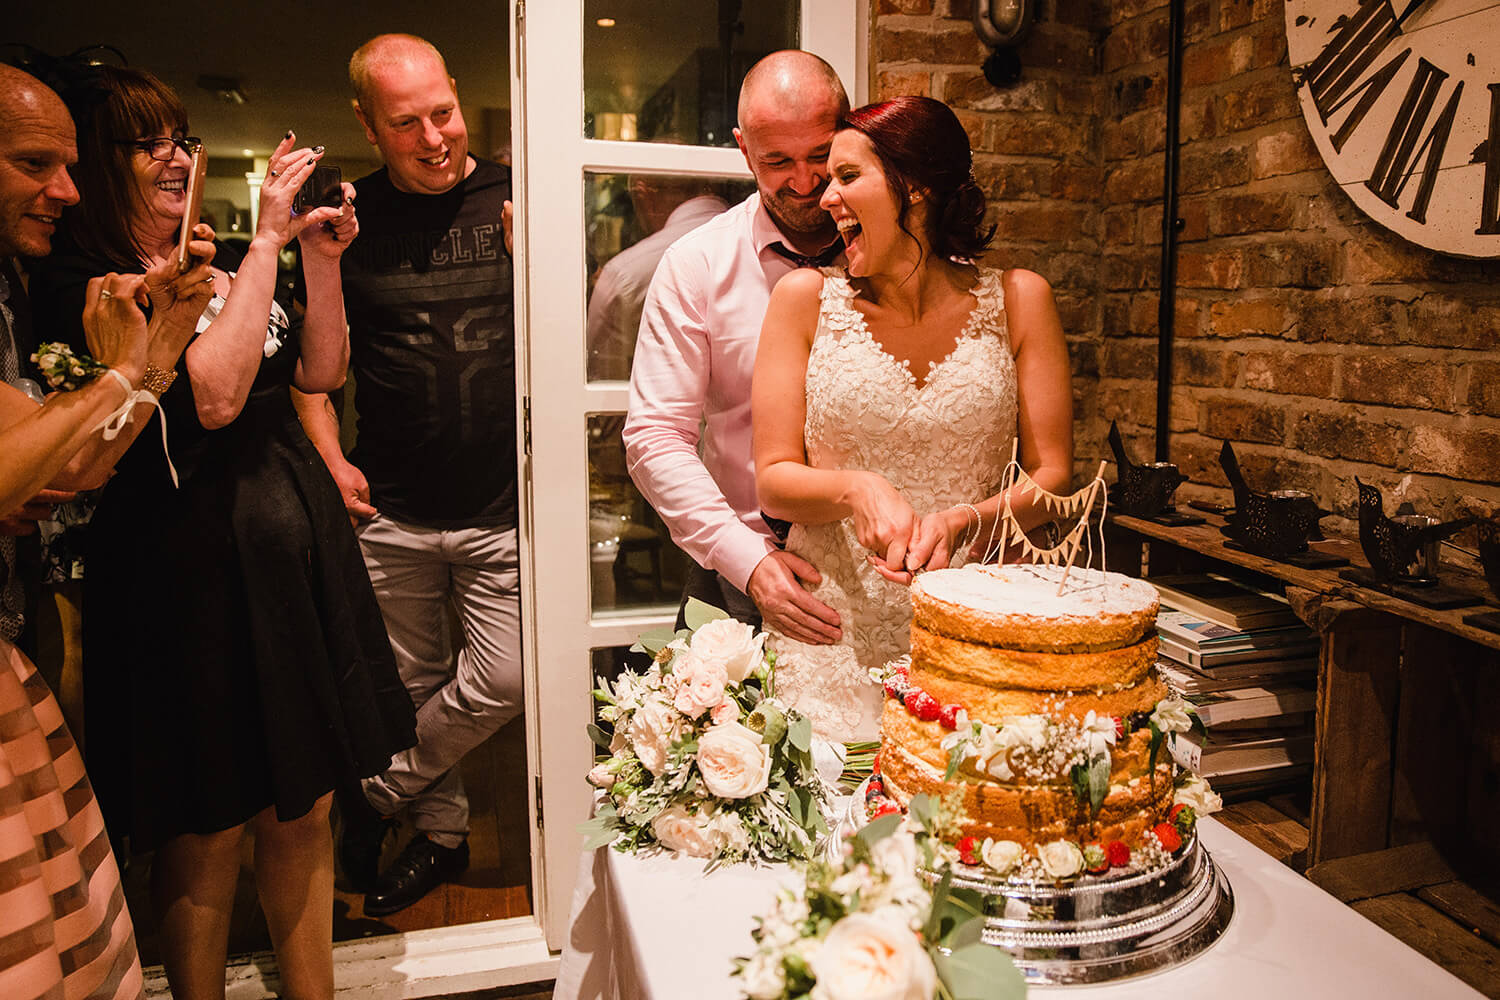 Newlyweds cutting cake while being photographed by guests on camera phones